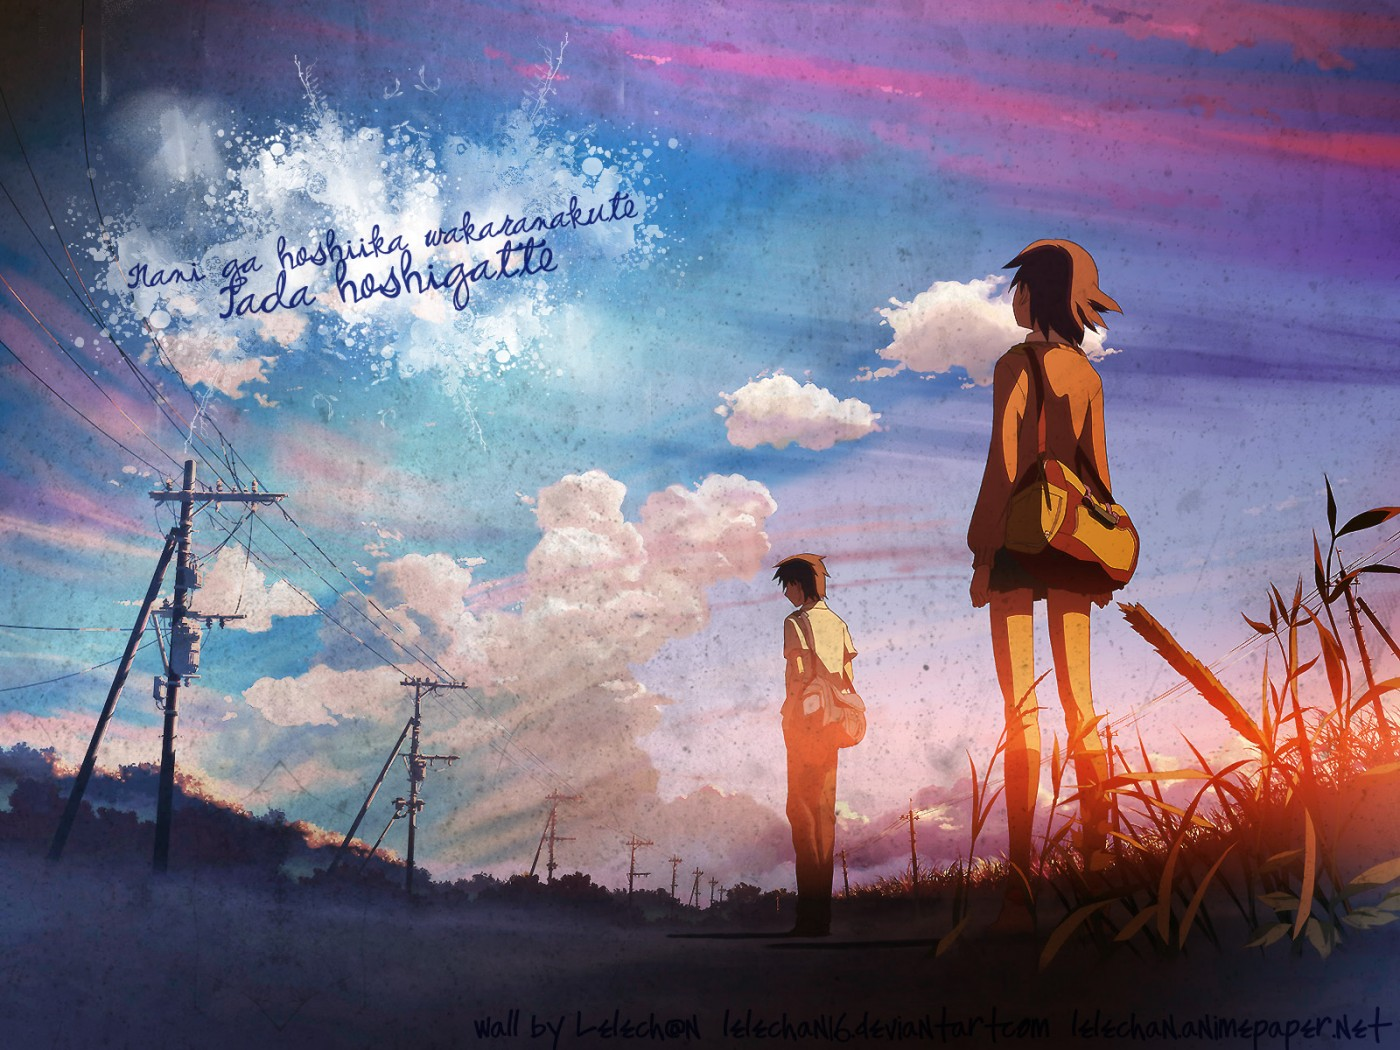 5 Centimeters Per Second Wallpaper And Background Image